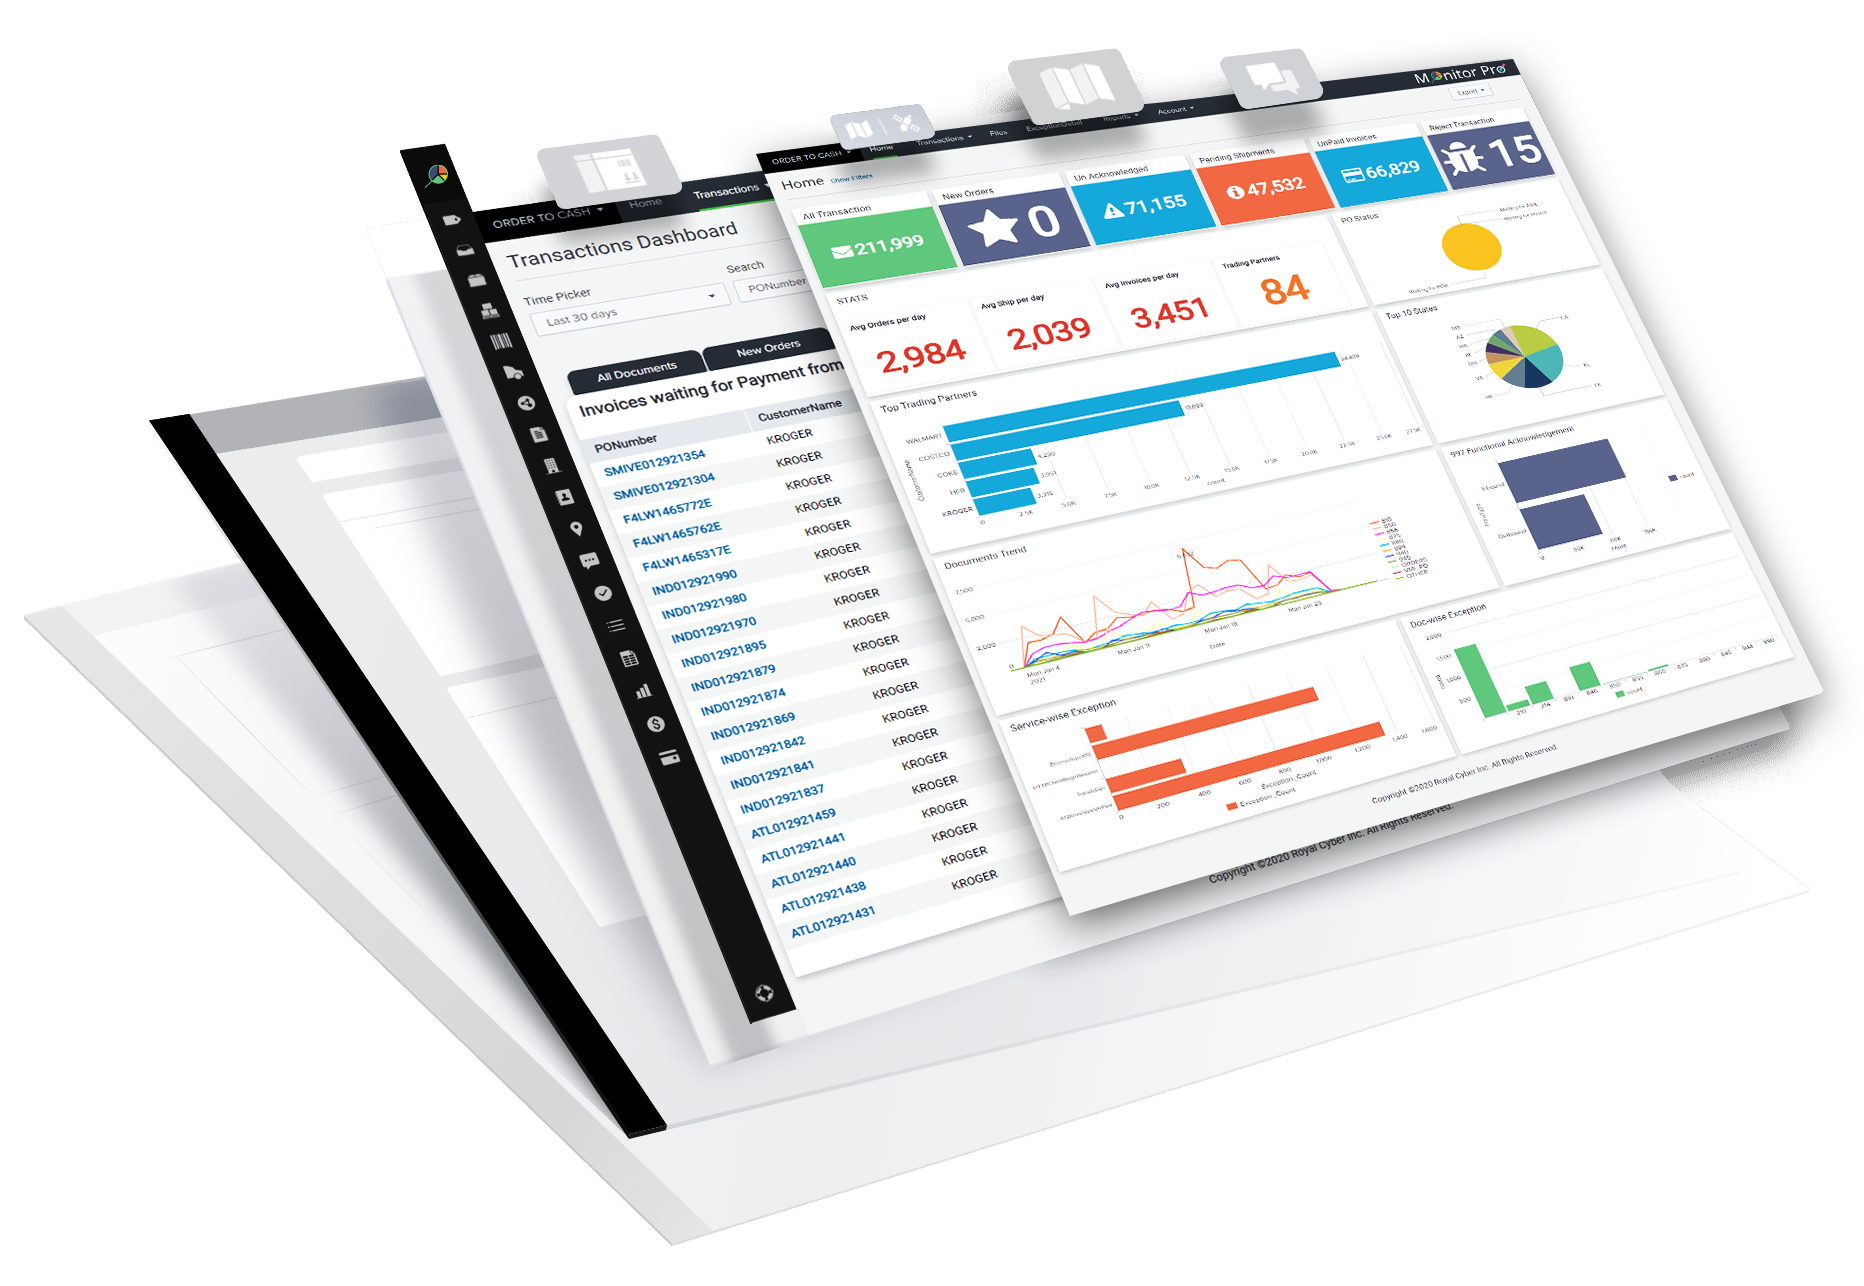 Analytics in supply chain, supply chain analytics, business data analytics, data analytics solutions or business intelligence and analytics, call it what you want - Monitor Pro does it all.